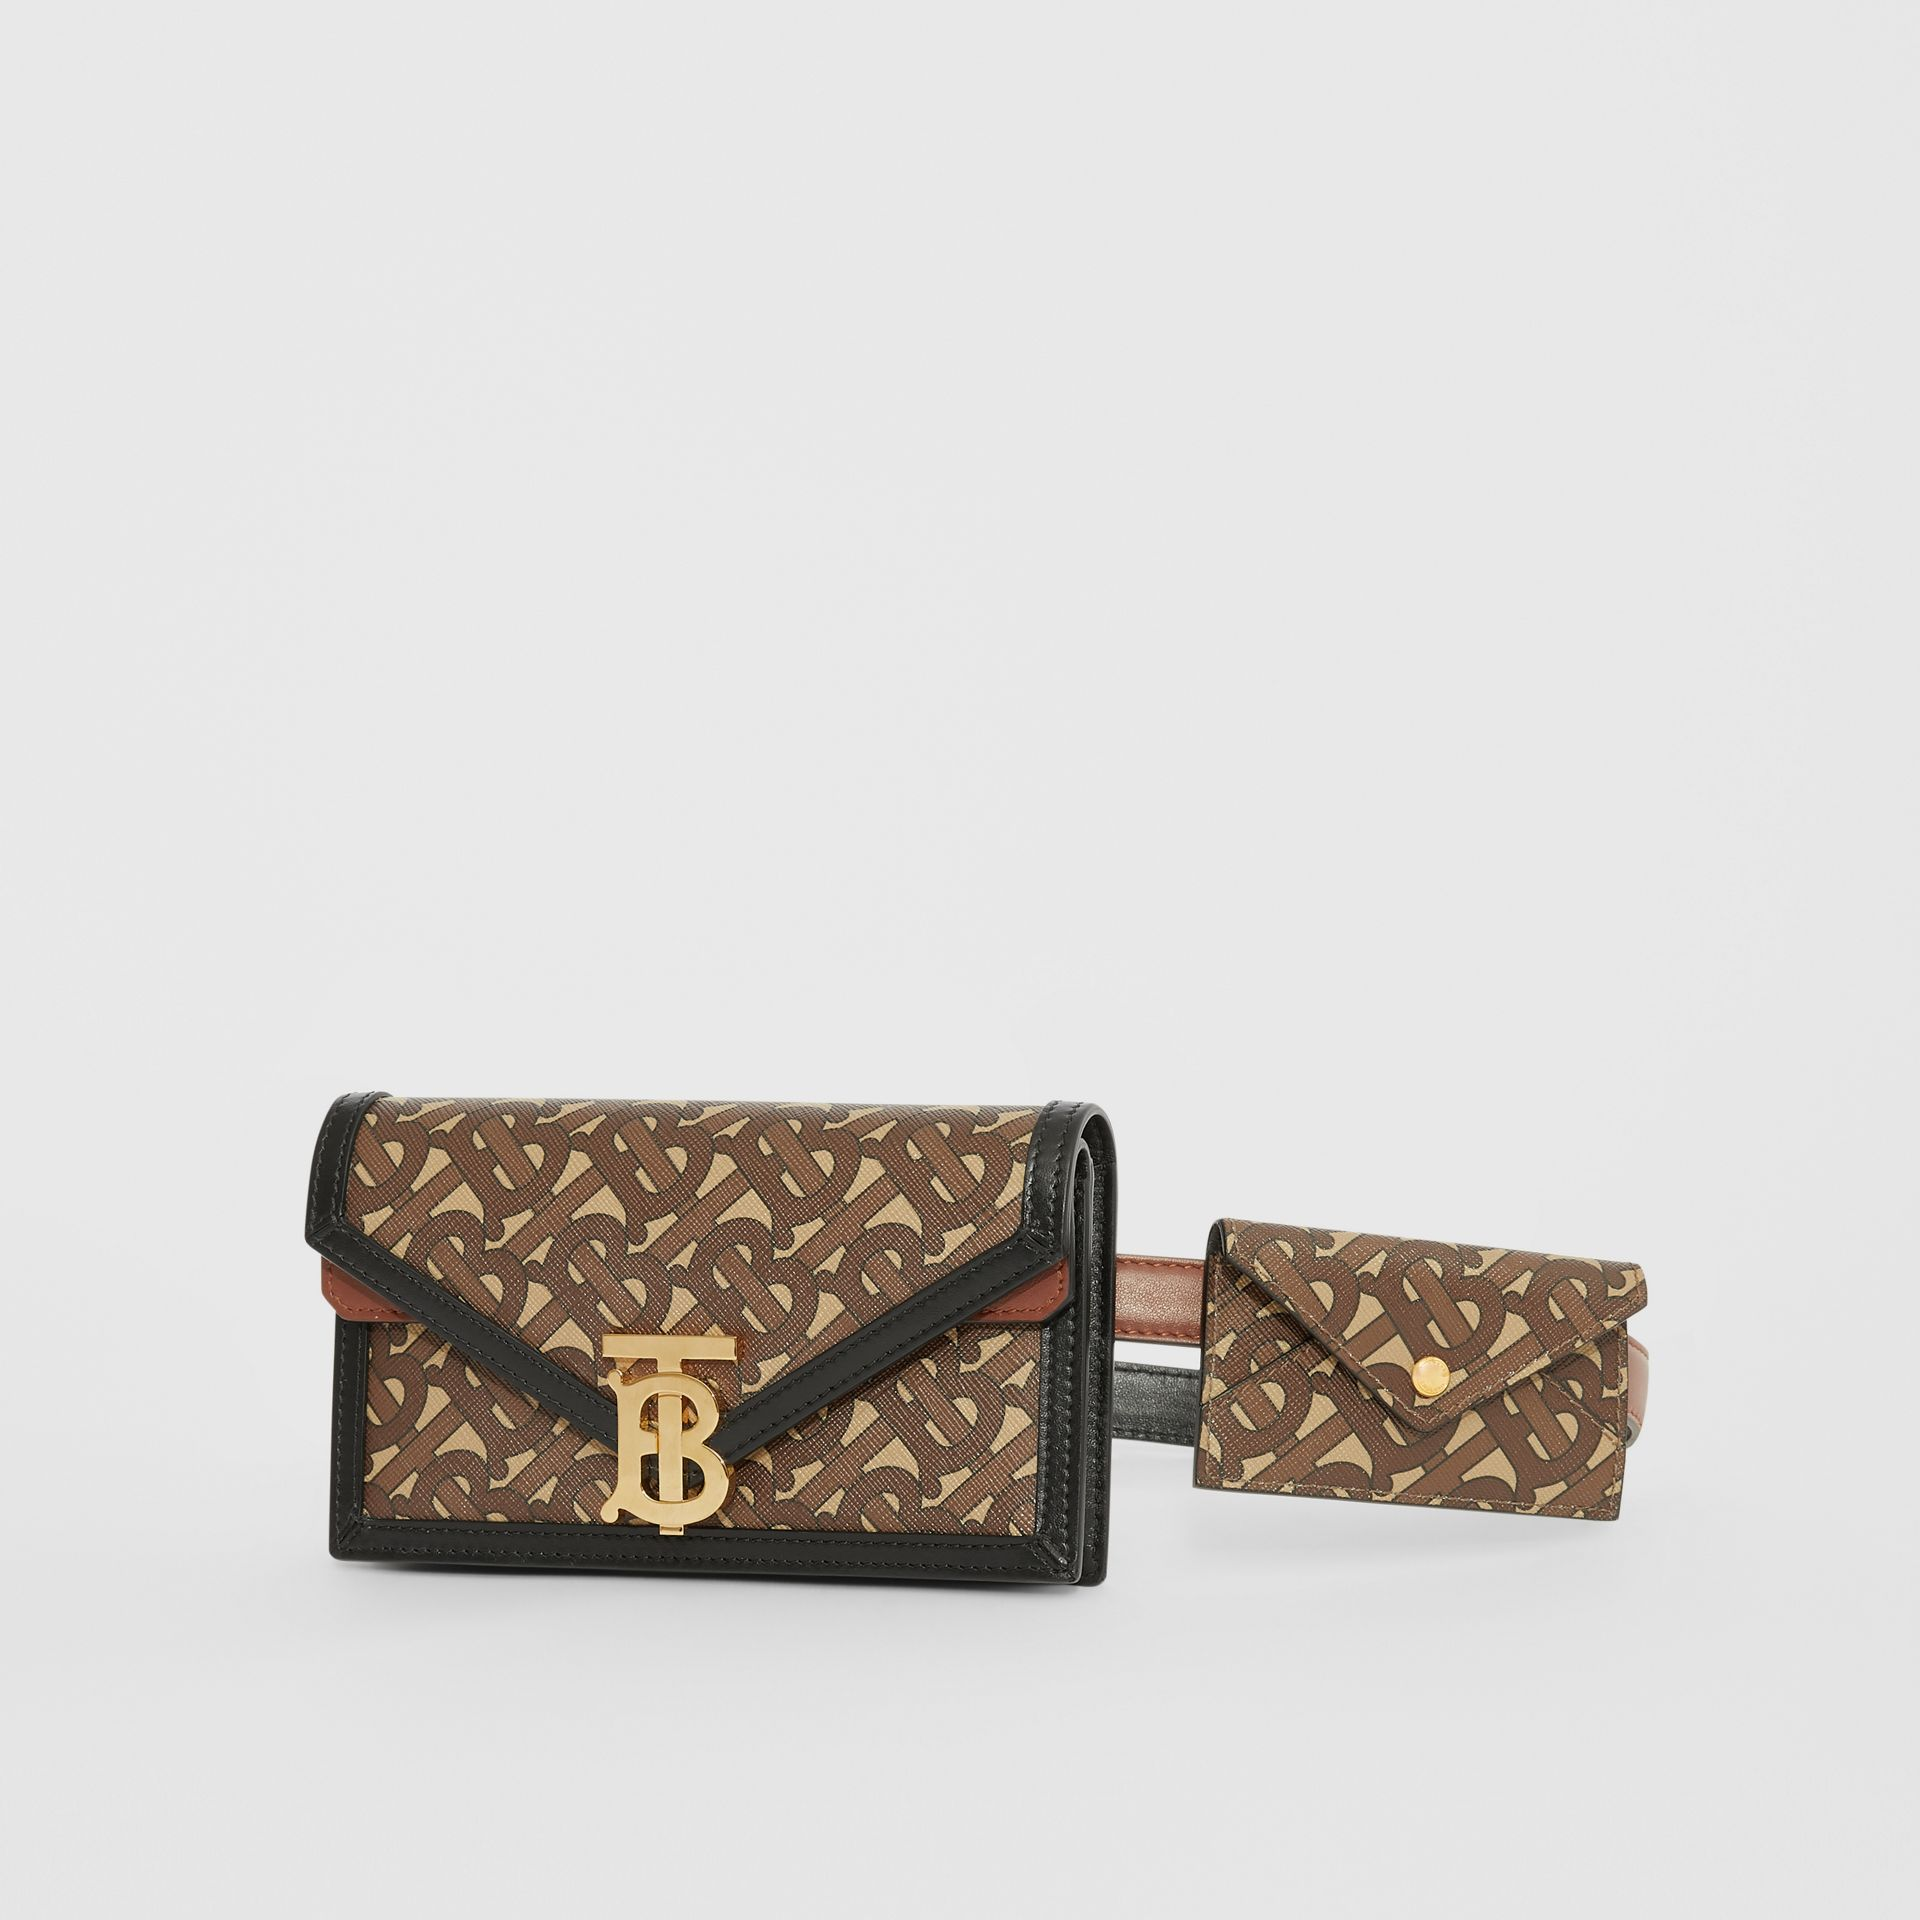 Belted Monogram E-canvas TB Envelope Clutch in Bridle Brown - Women | Burberry - gallery image 5